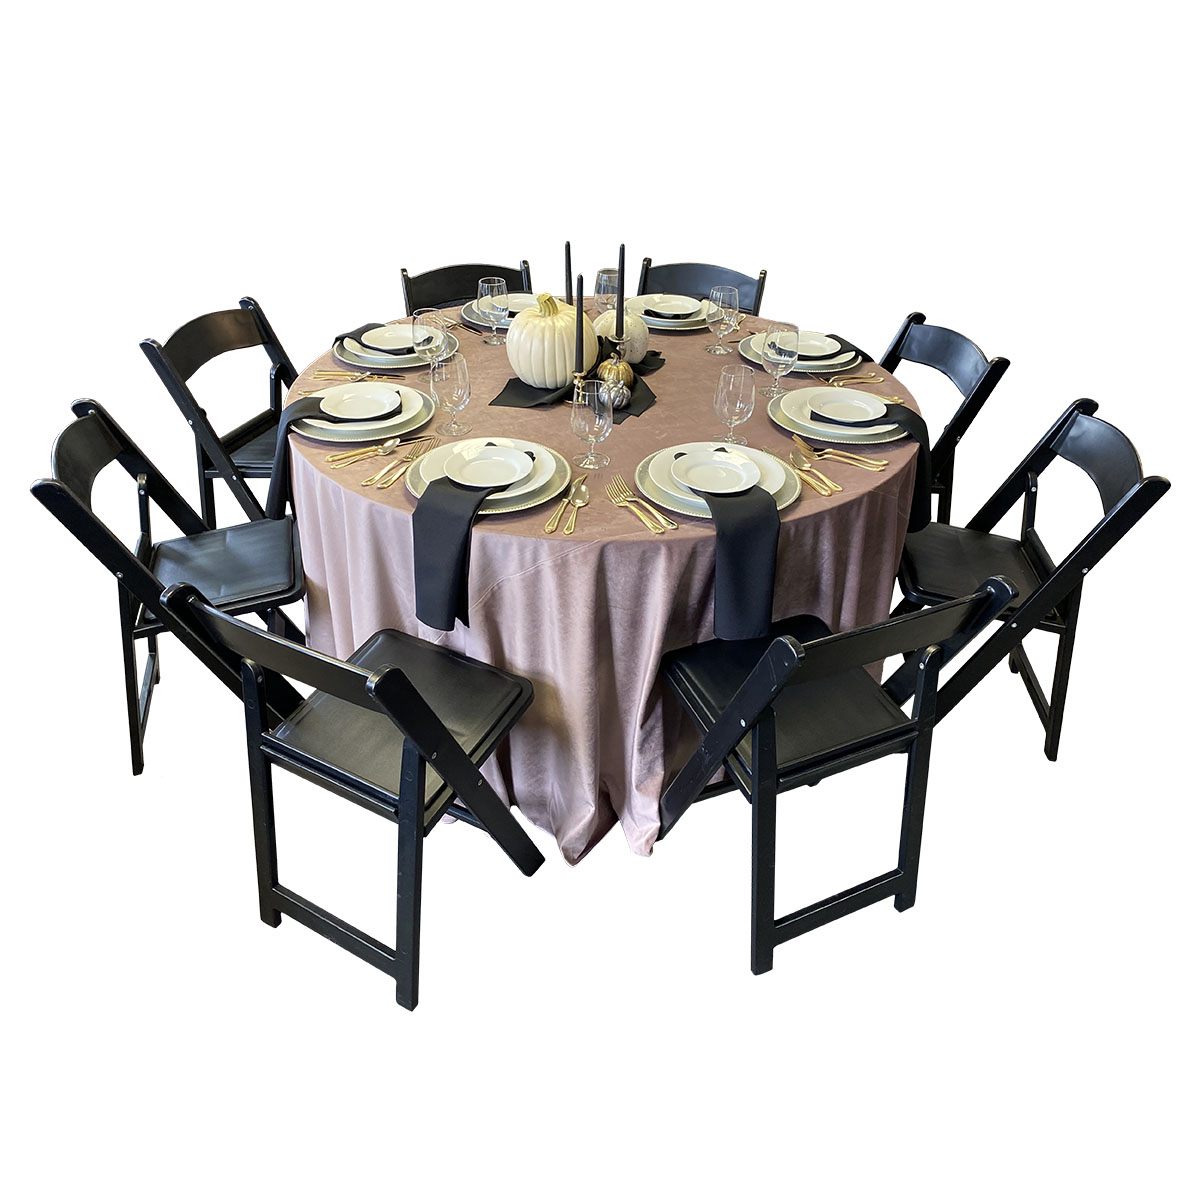 "120"" Round Rose Velvet Tablecover On 60"" Round Table With Black Napkins, White Royal China, Gold Plated Flatware, 16oz Goblets And Black Garden Chairs"